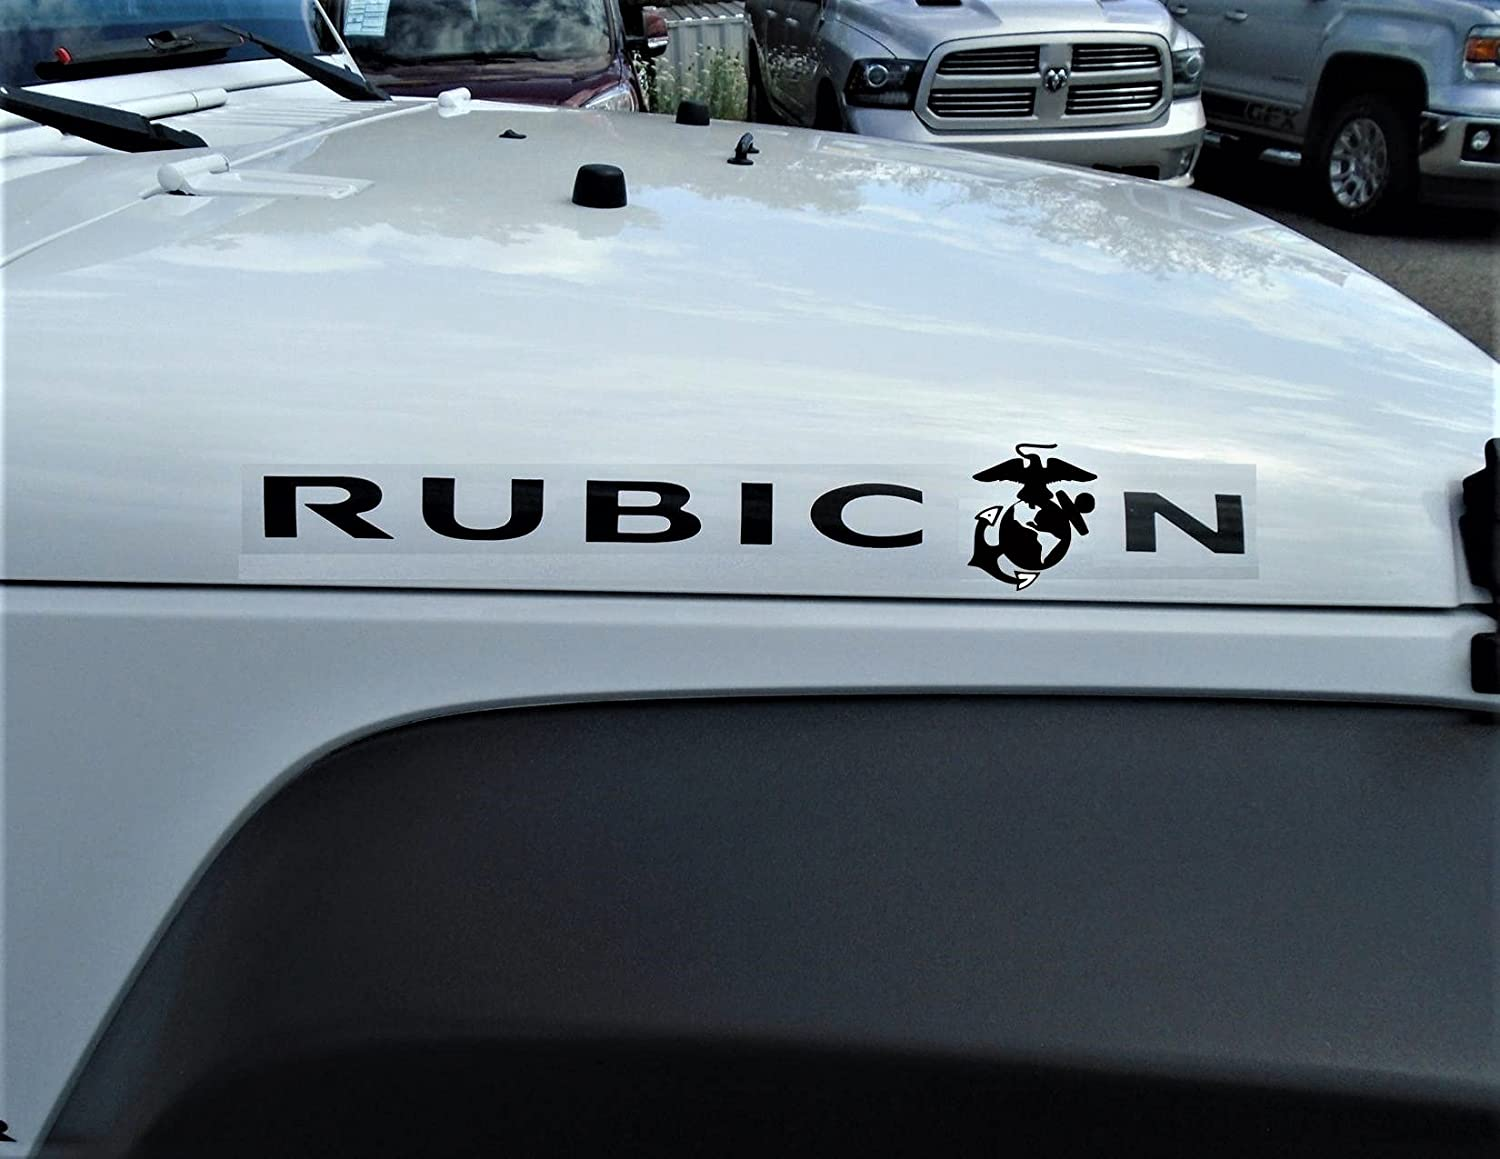 Usmc rubicon hood decal black 20 25x2 75 pair vinyl rubicon jeep decal sticker jeep hood decal rubicon oem sticker wrangler sahara